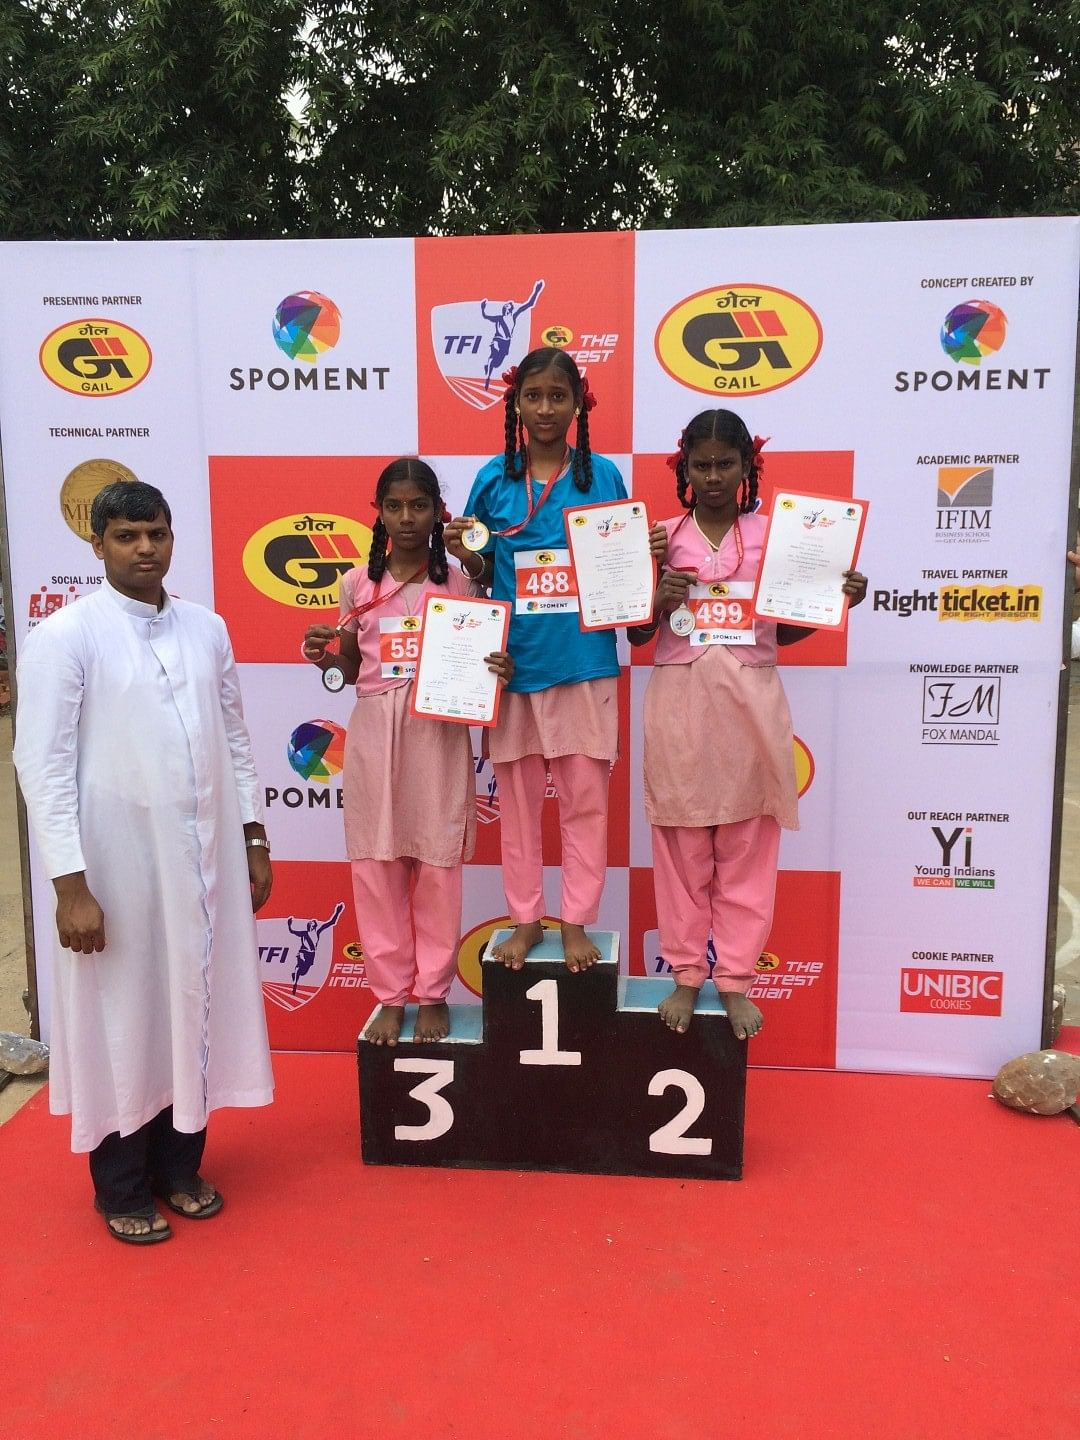 GAIL - The Fastest Indian results from Chennai